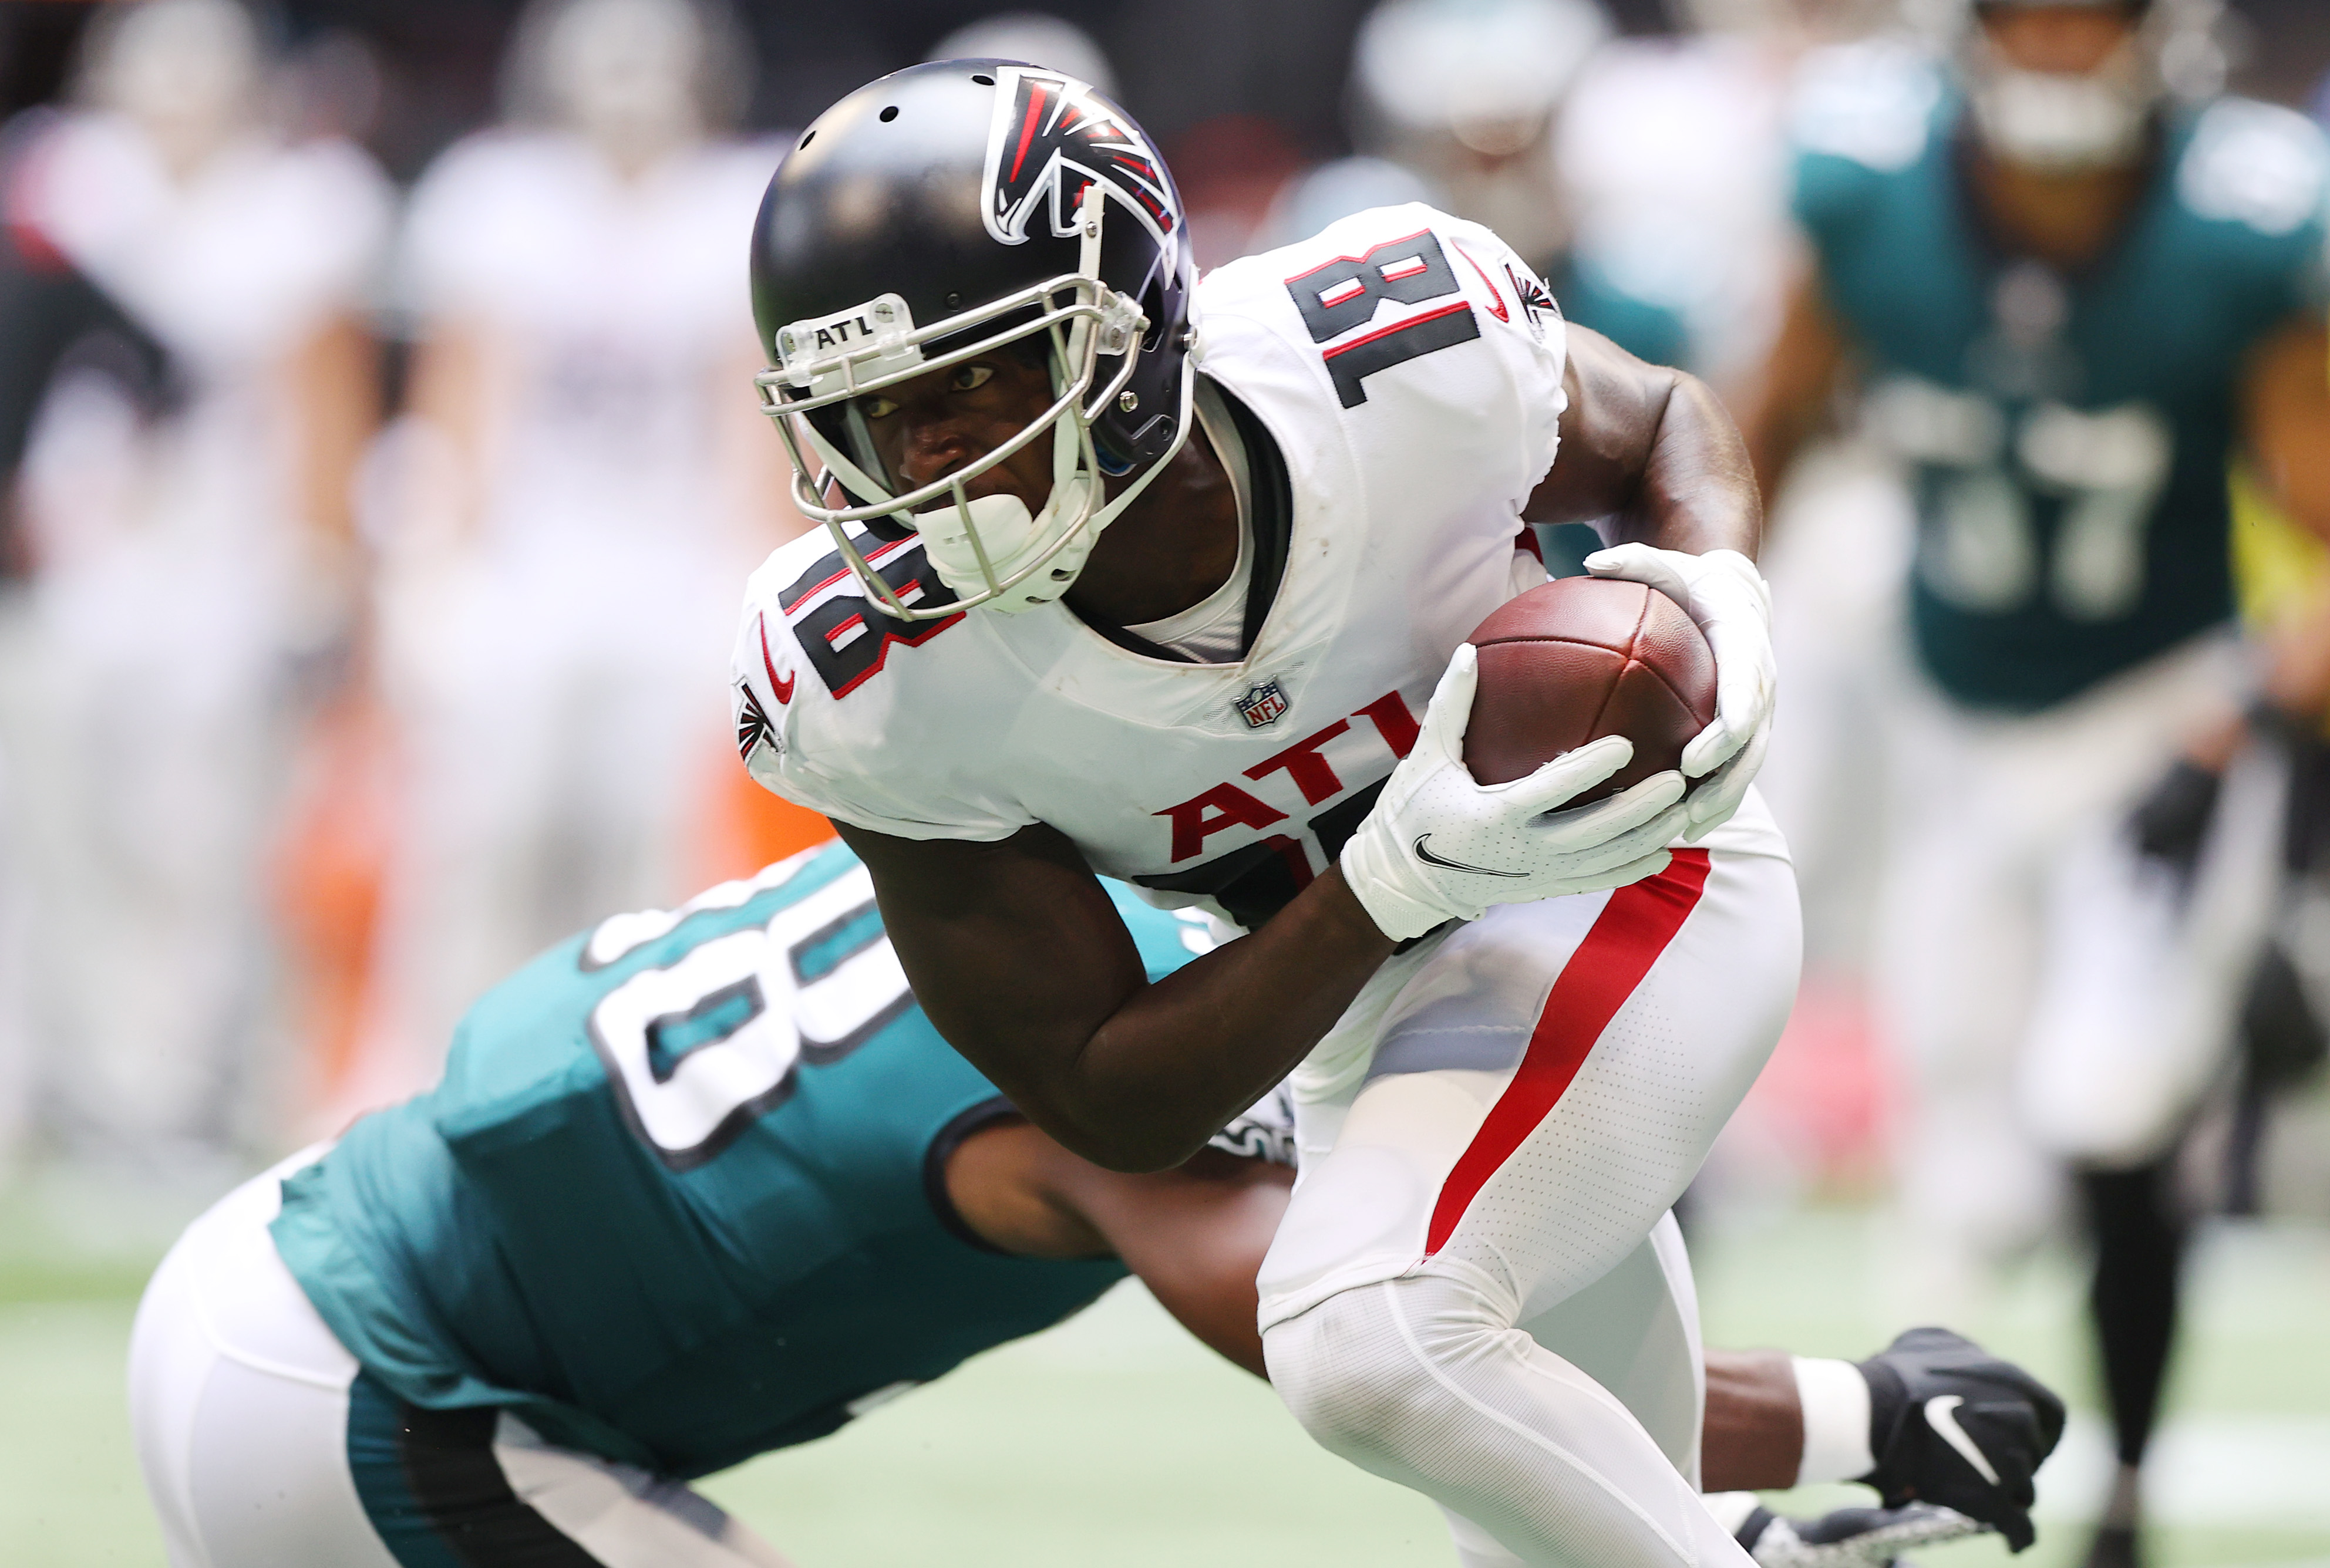 Calvin Ridley #18 of the Atlanta Falcons carries the ball against the Philadelphia Eagles during the third quarter at Mercedes-Benz Stadium on September 12, 2021 in Atlanta, Georgia.